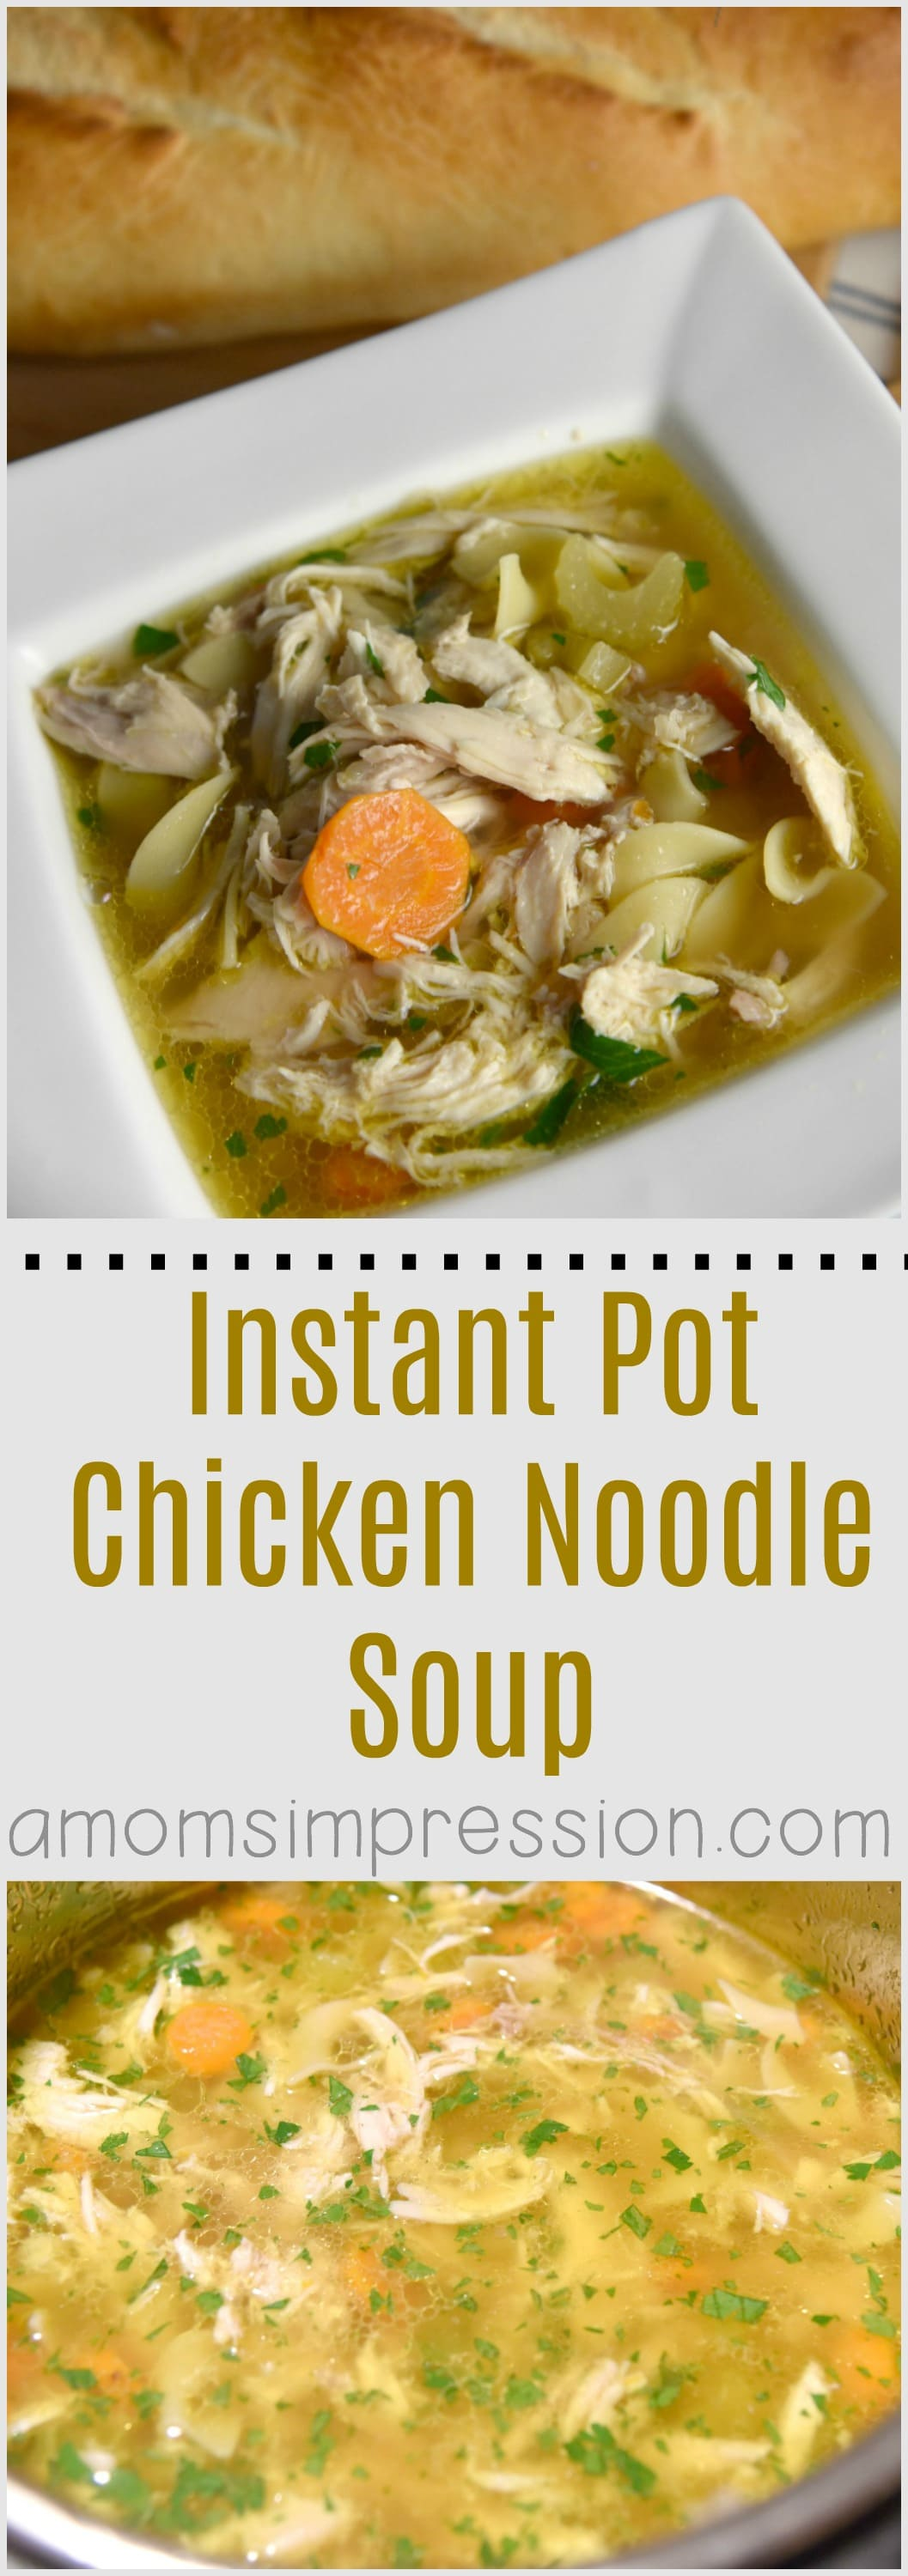 This simple Instant Pot Chicken Noodle Soup recipe can be made in no time in your electric pressure cooker. This healthy recipe uses lots of vegetables and can be easily adapted for the Paleo diet. #ad #InstantPot #InstantPotRecipes